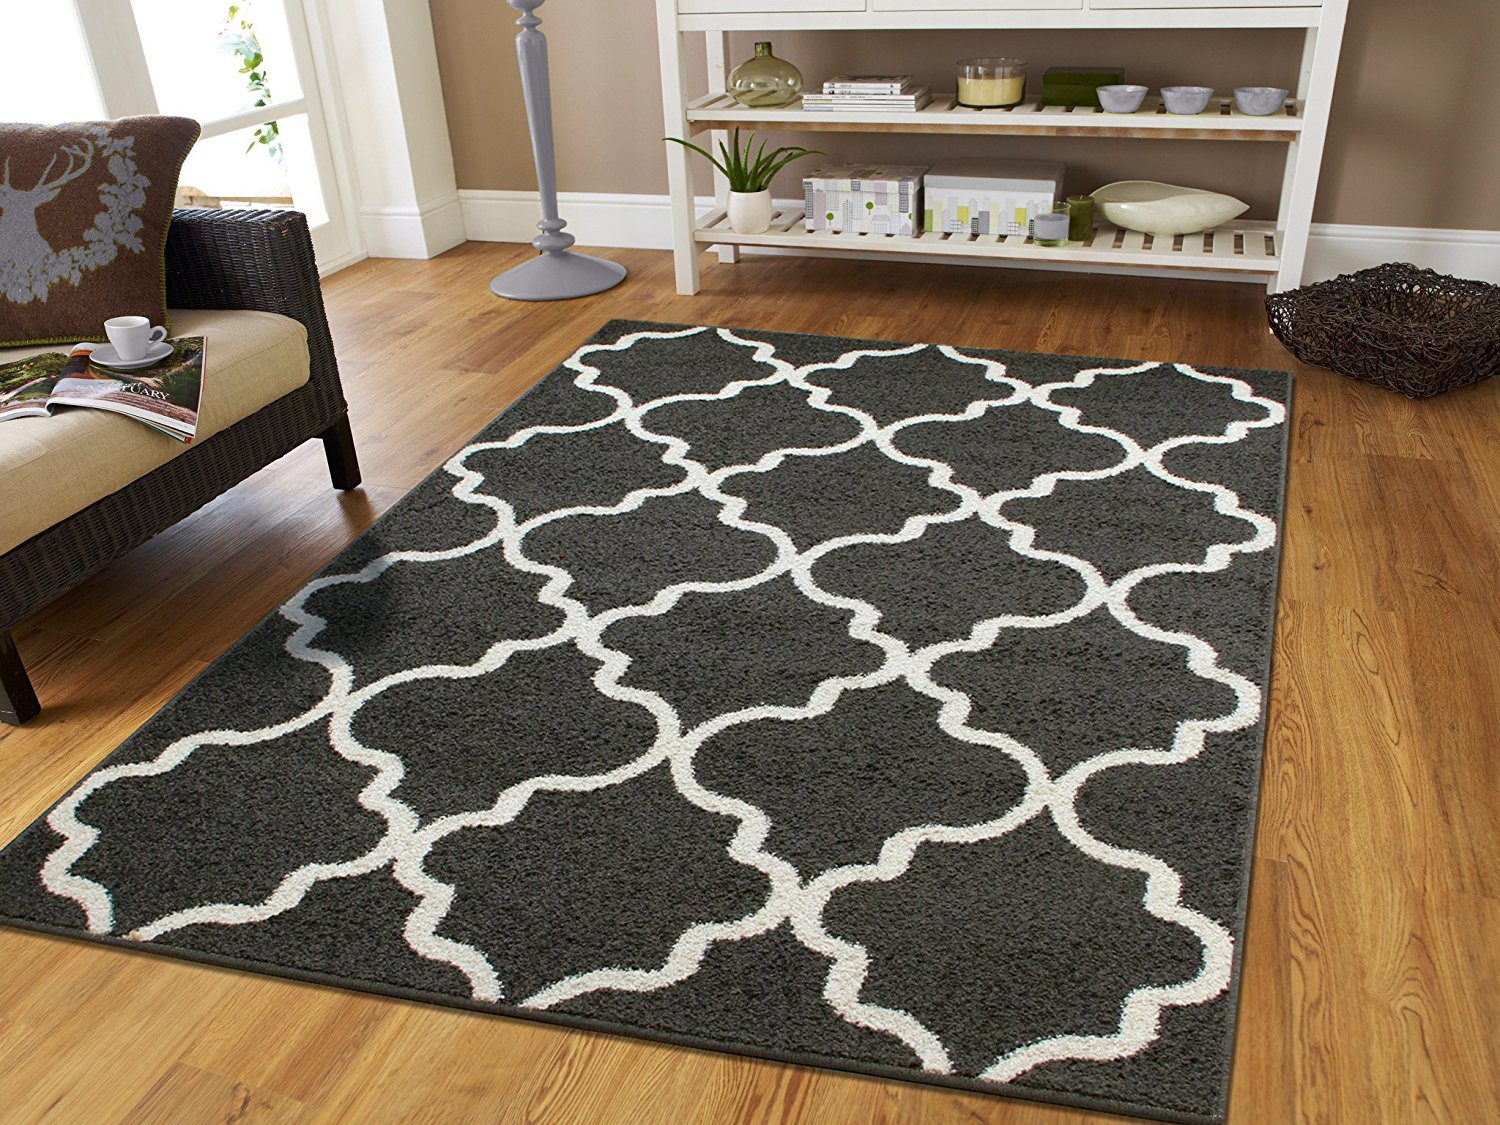 area rugs for living room 8x10 gray dining room rugs for under the table 8x11 morrocan